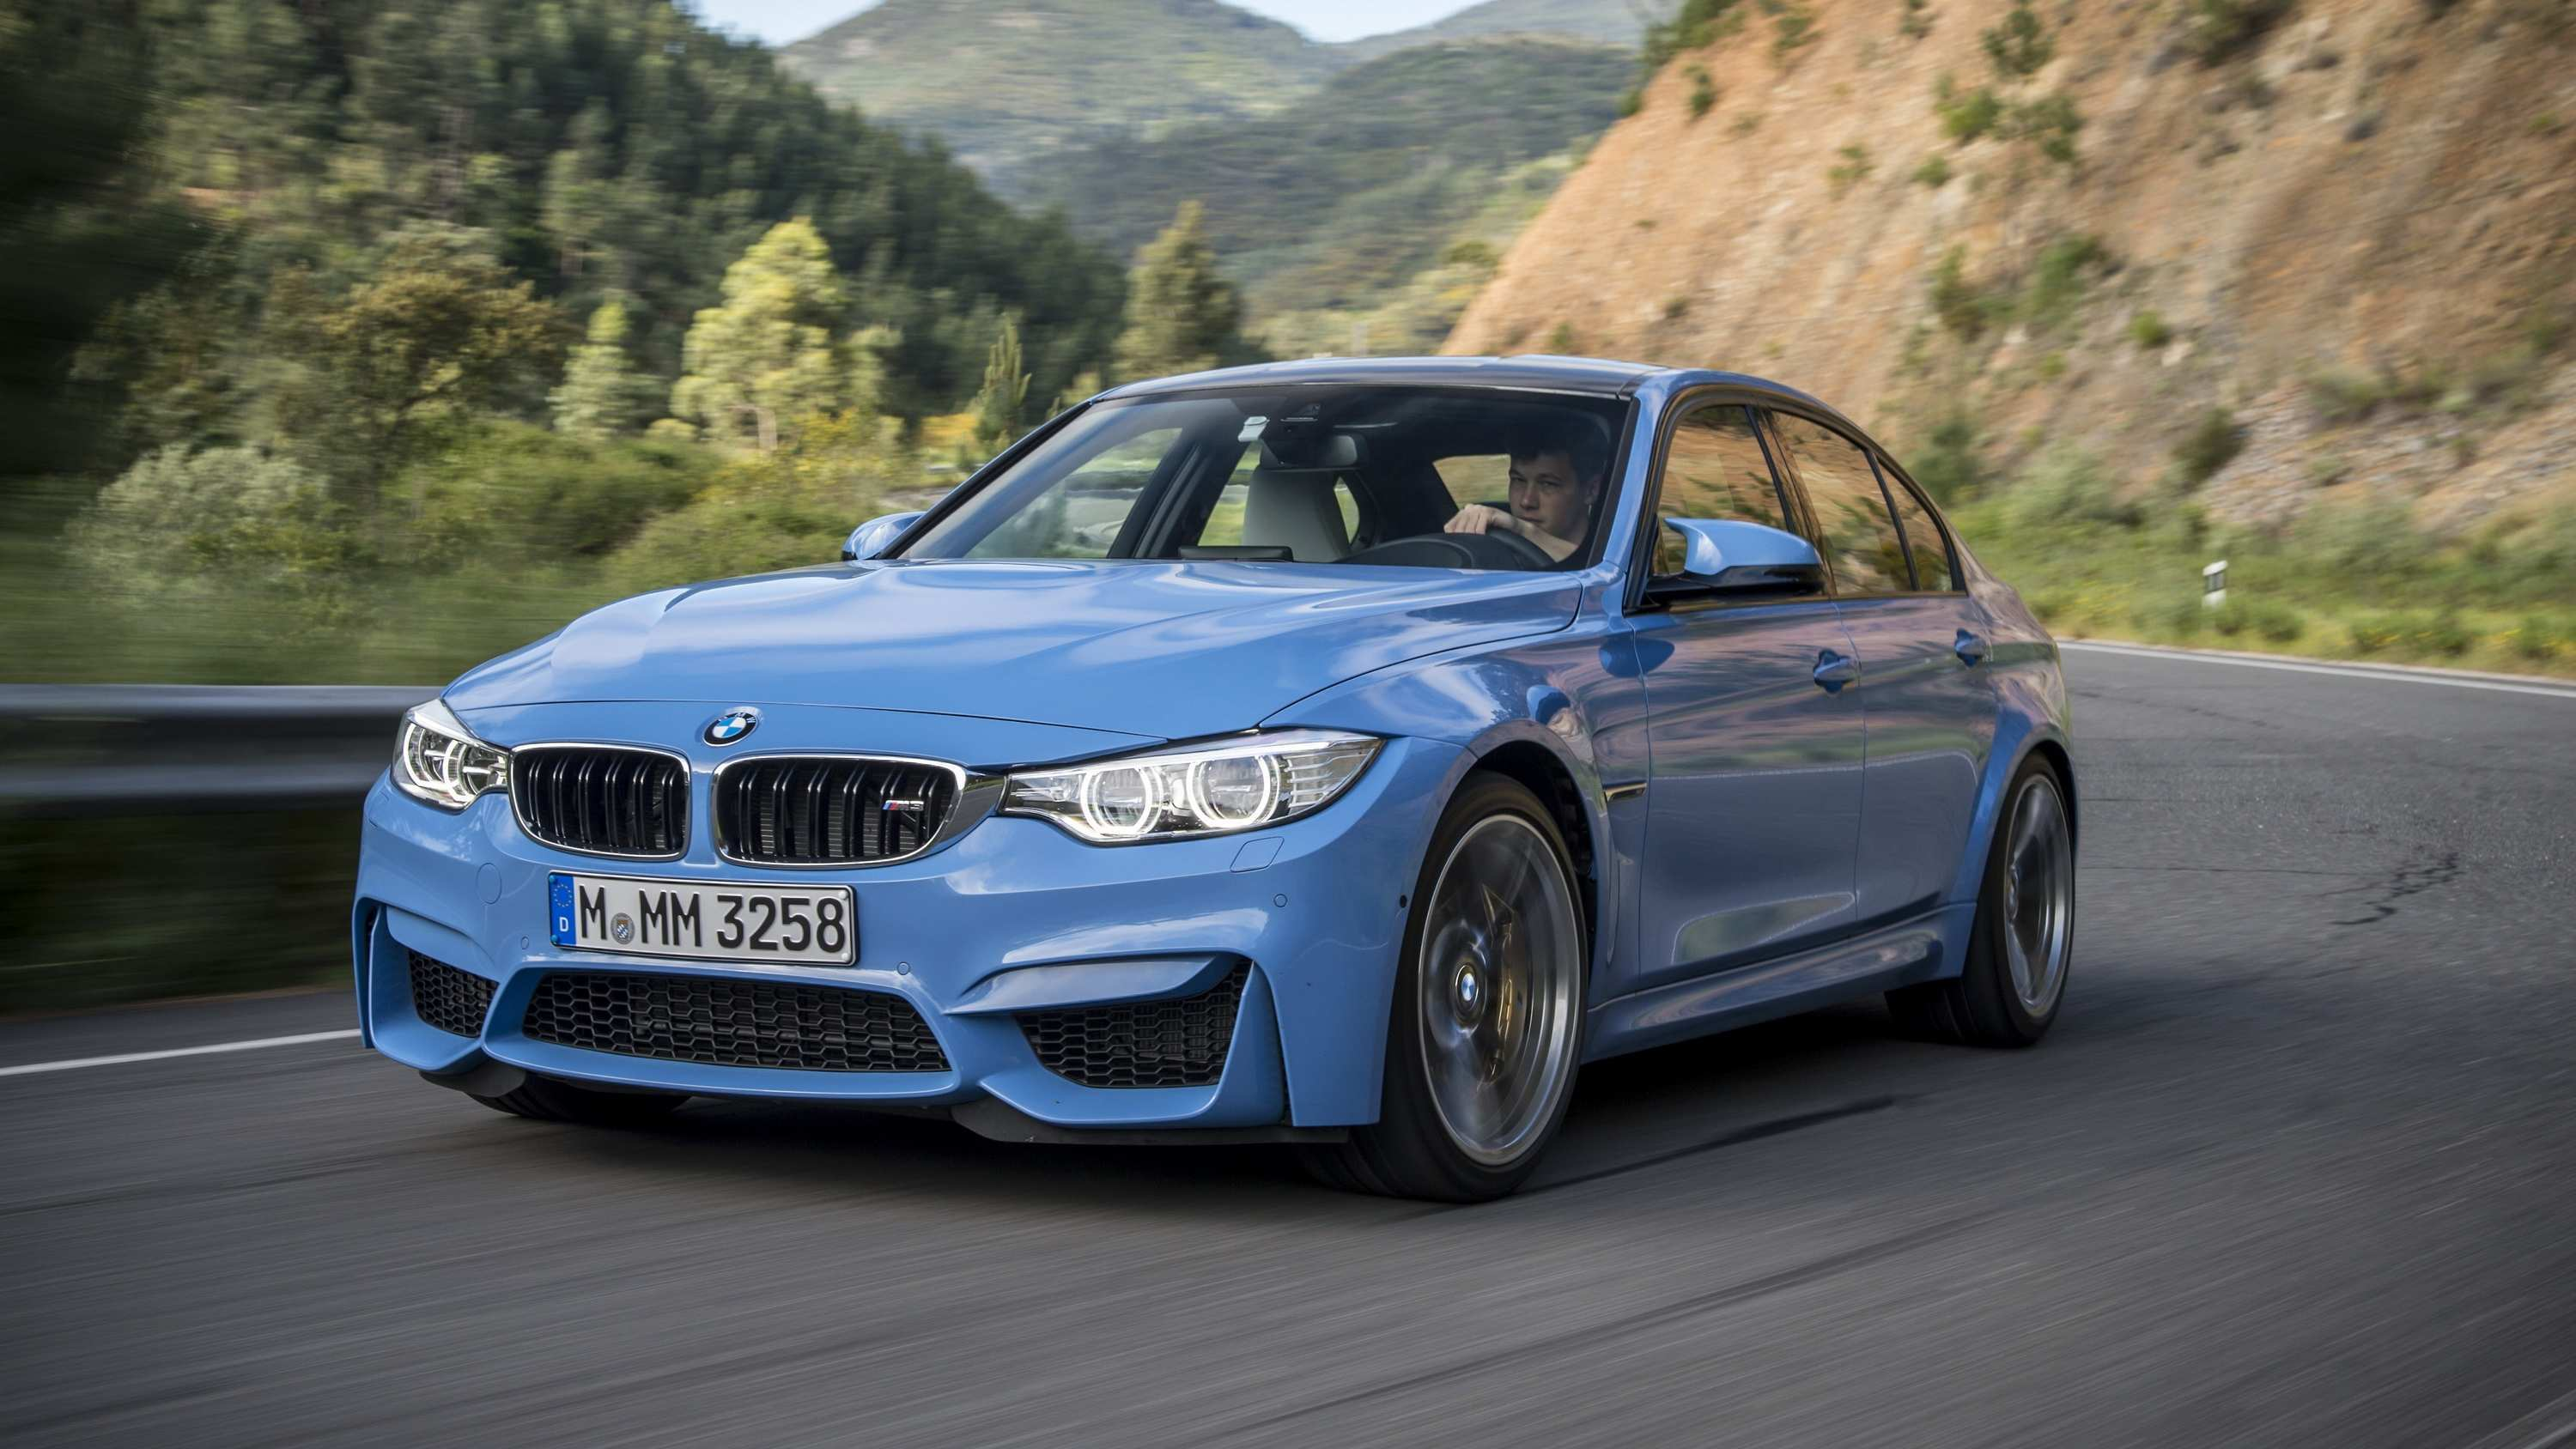 17 The Best 2020 BMW M4 All Wheel Drive Picture